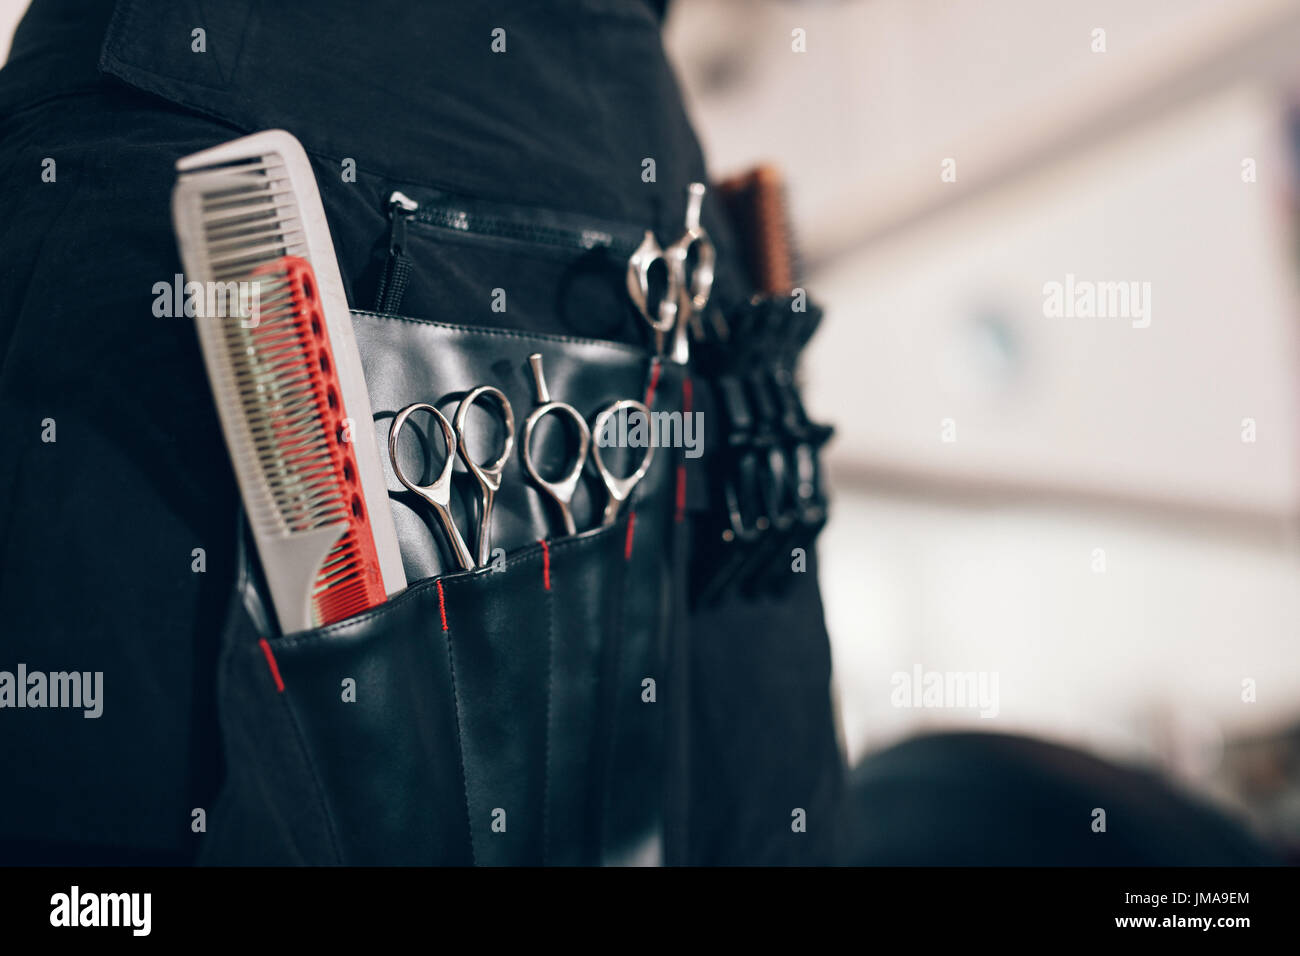 Closeup of scissors and combs in a salon holster pouch. Hairdressing tools inside a hairdresser waist pouch. - Stock Image